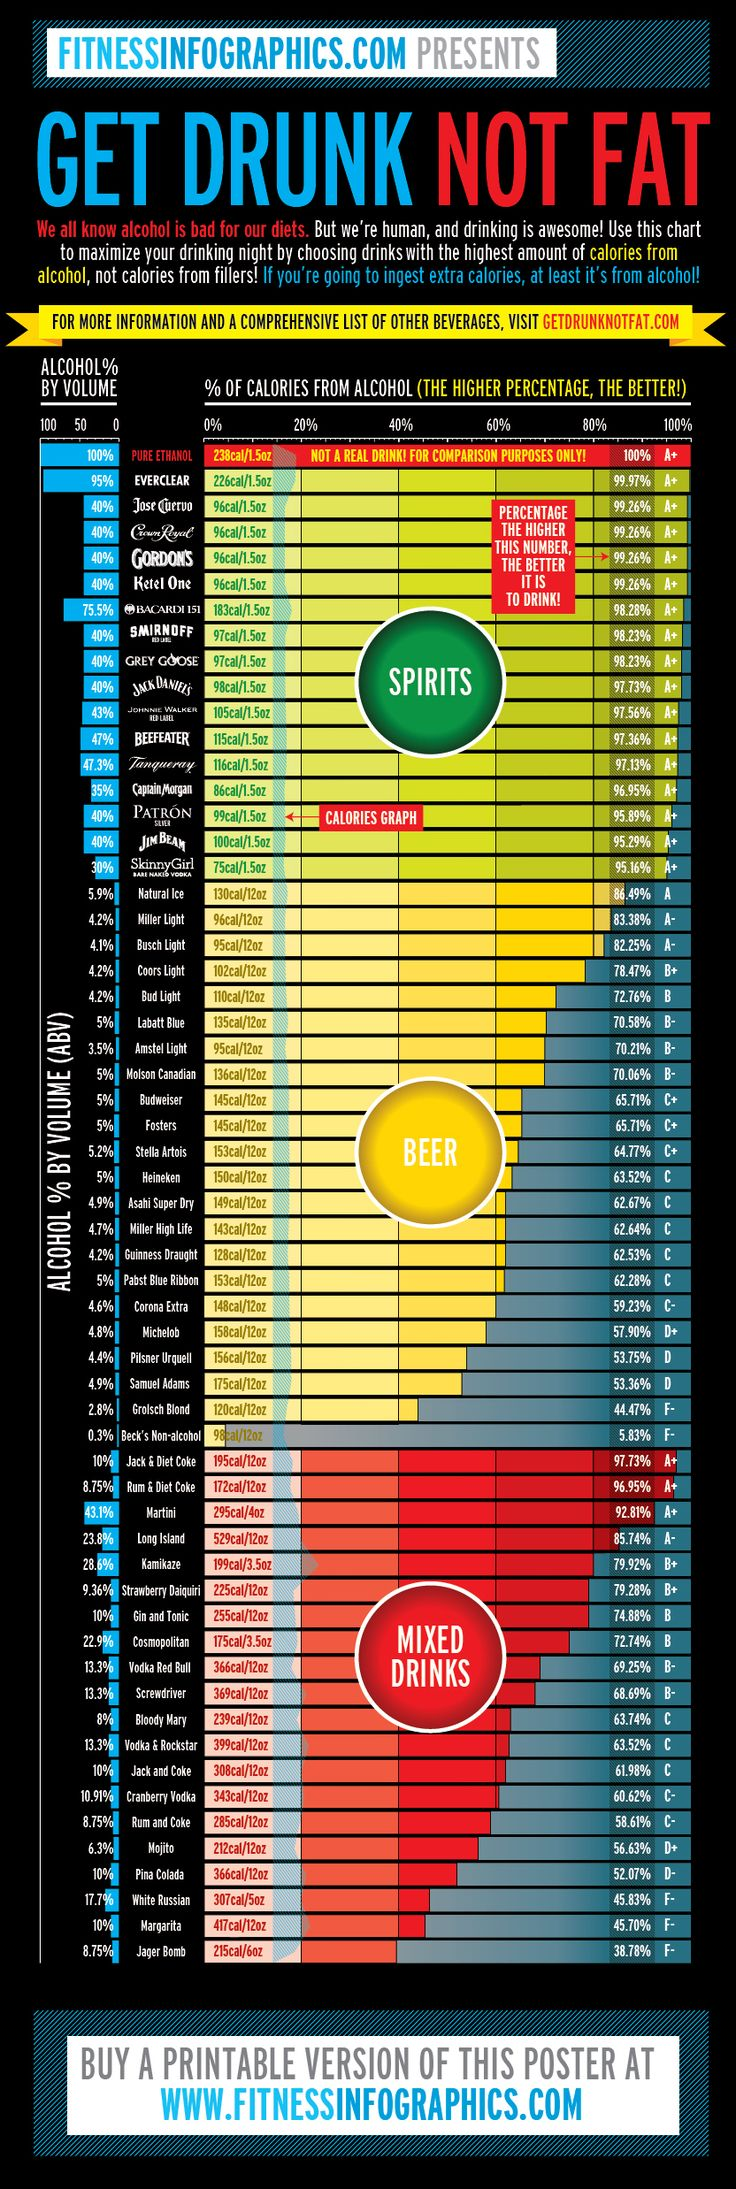 Get drunk, not fat! Use this chart to maximize your drinking by choosing drinks with the highest amount of calories from alcohol, not calories from fillers! The better the alcohol-to-calorie ratio, the less drinks you'll need to have a good time. This chart is hard to see on a phone but there's an app you can download called Great Drink Nutrition Facts with all the same info